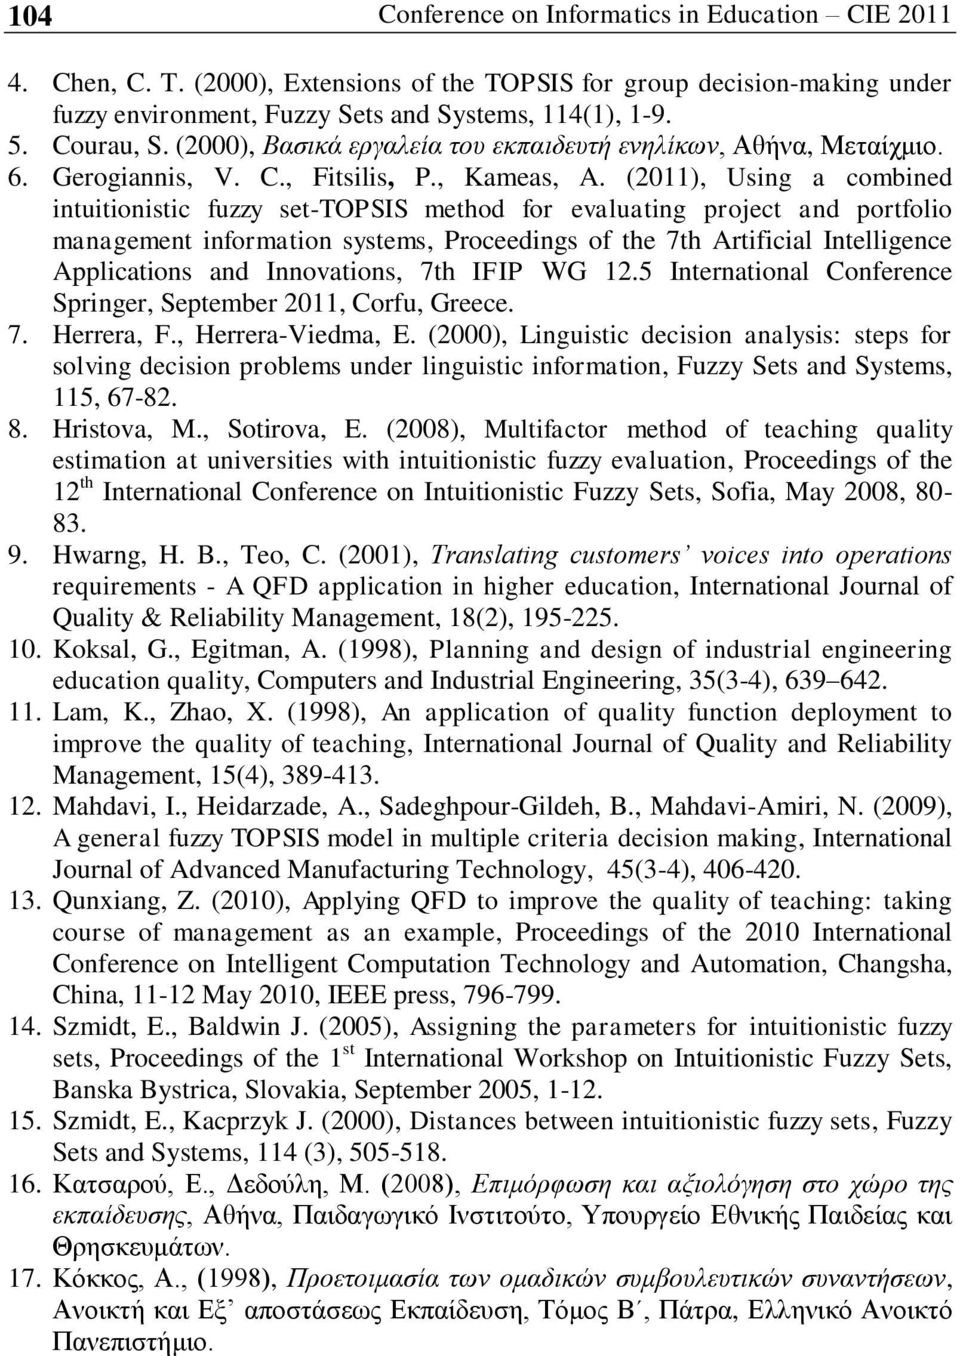 (2011), Using a combined intuitionistic fuzzy set-topsis method for evaluating project and portfolio management information systems, Proceedings of the 7th Artificial Intelligence Applications and